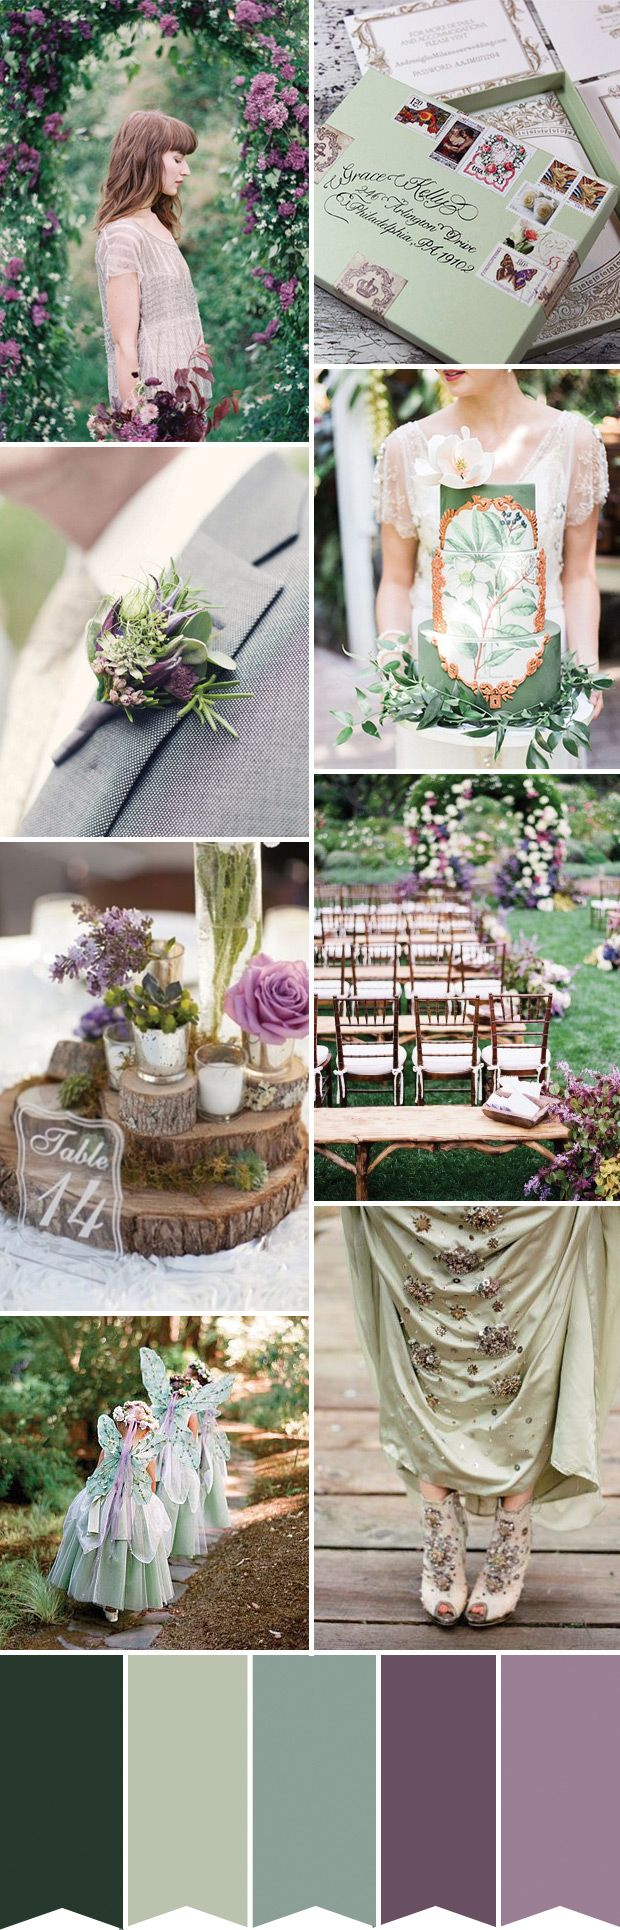 A fairytale grean and purple wedding inspiration palette | www.onefabday.com